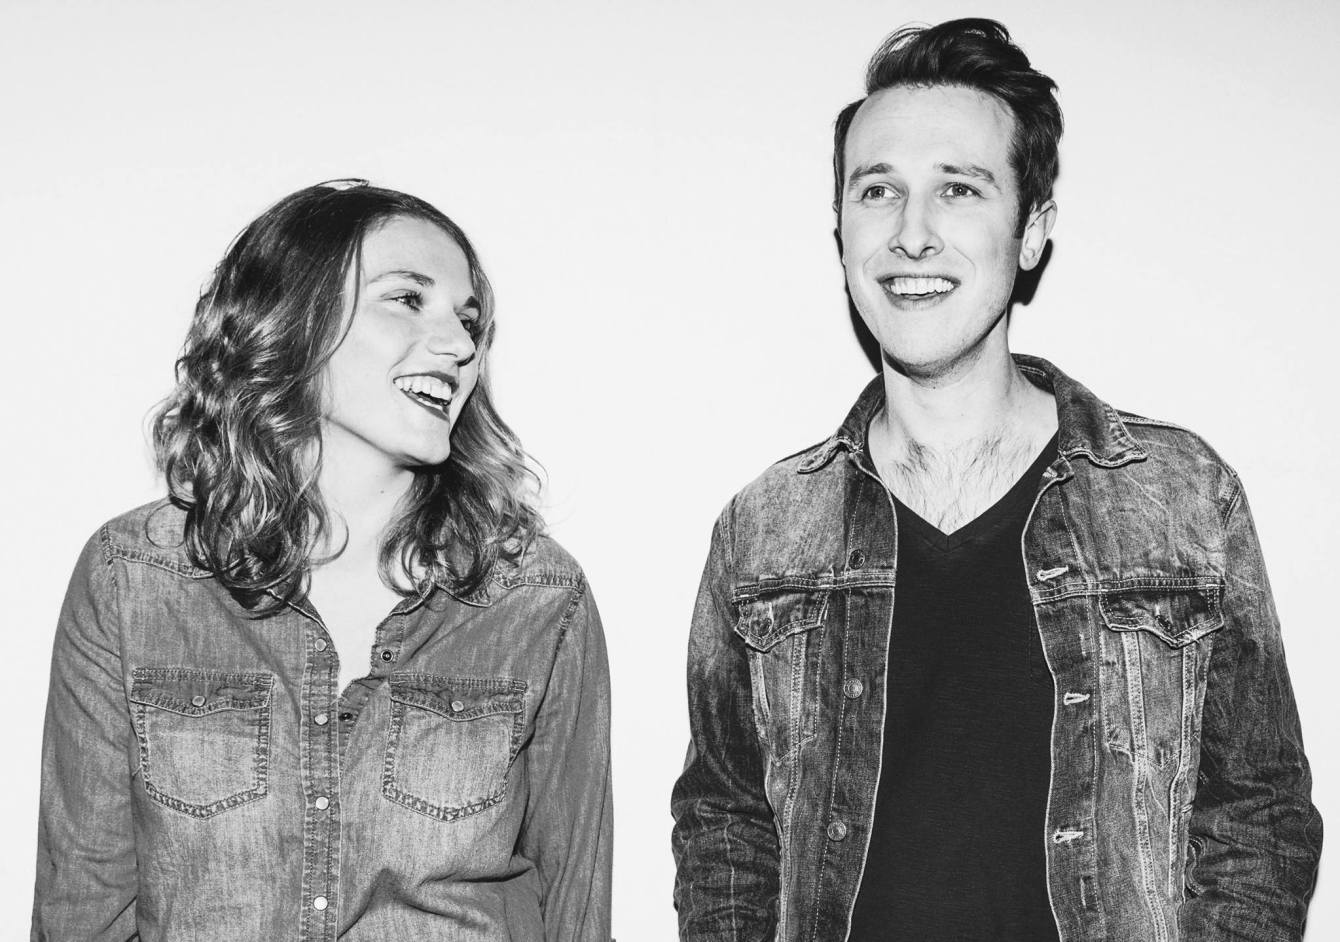 Sarah Vos and Daniel Wolff of Dead Horses smile as the look away from the camera